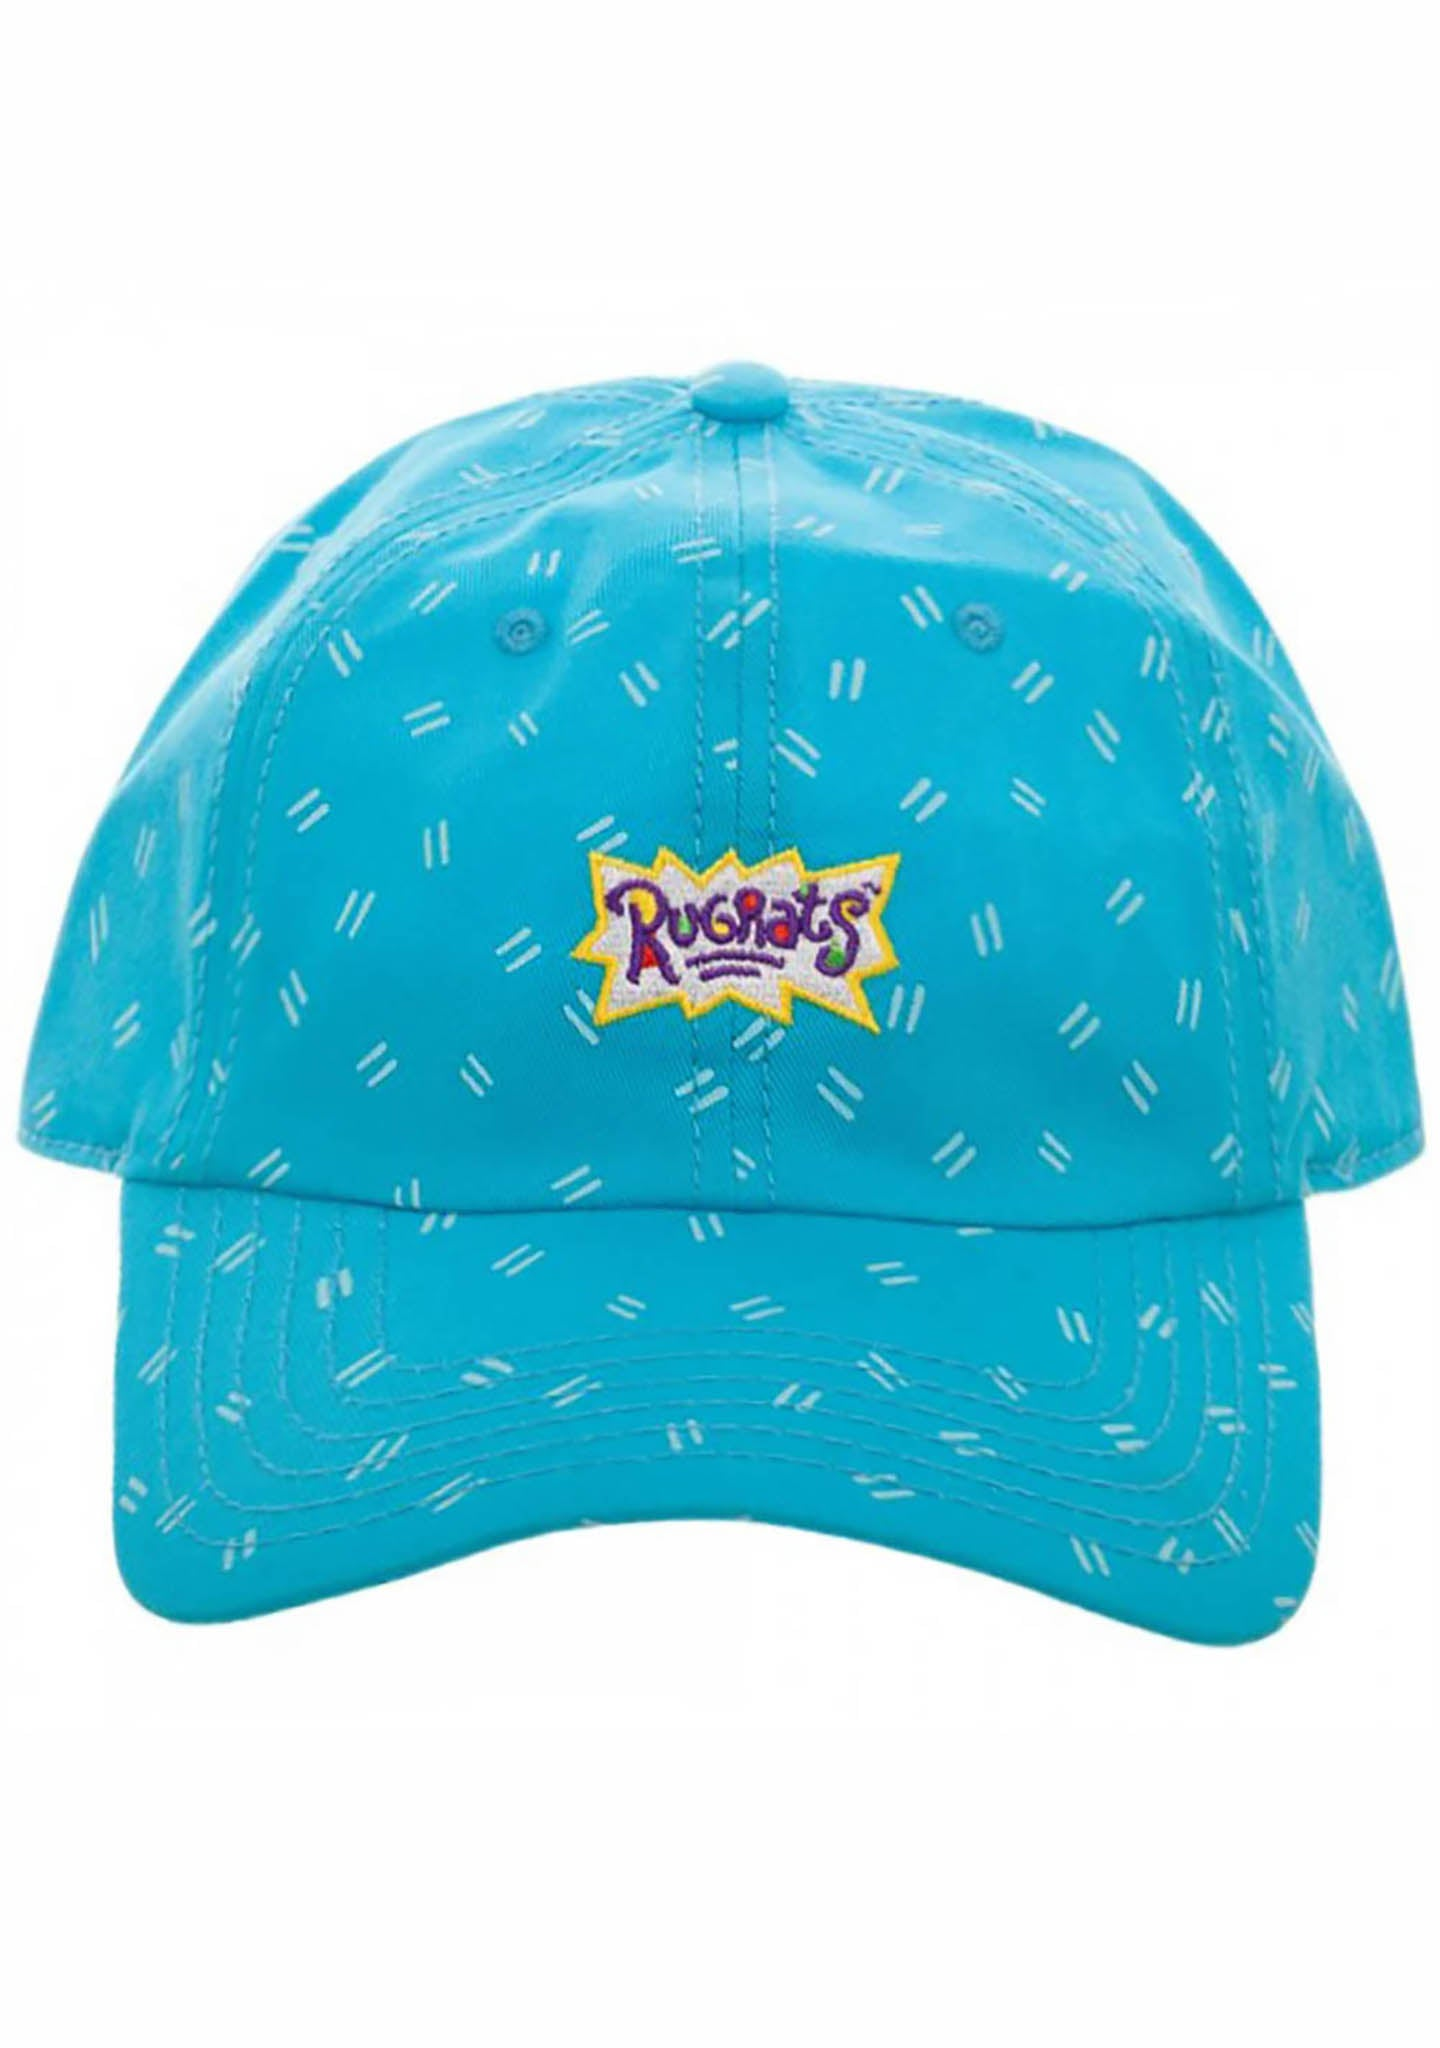 X Nickelodeon Rugrats Dad Hat